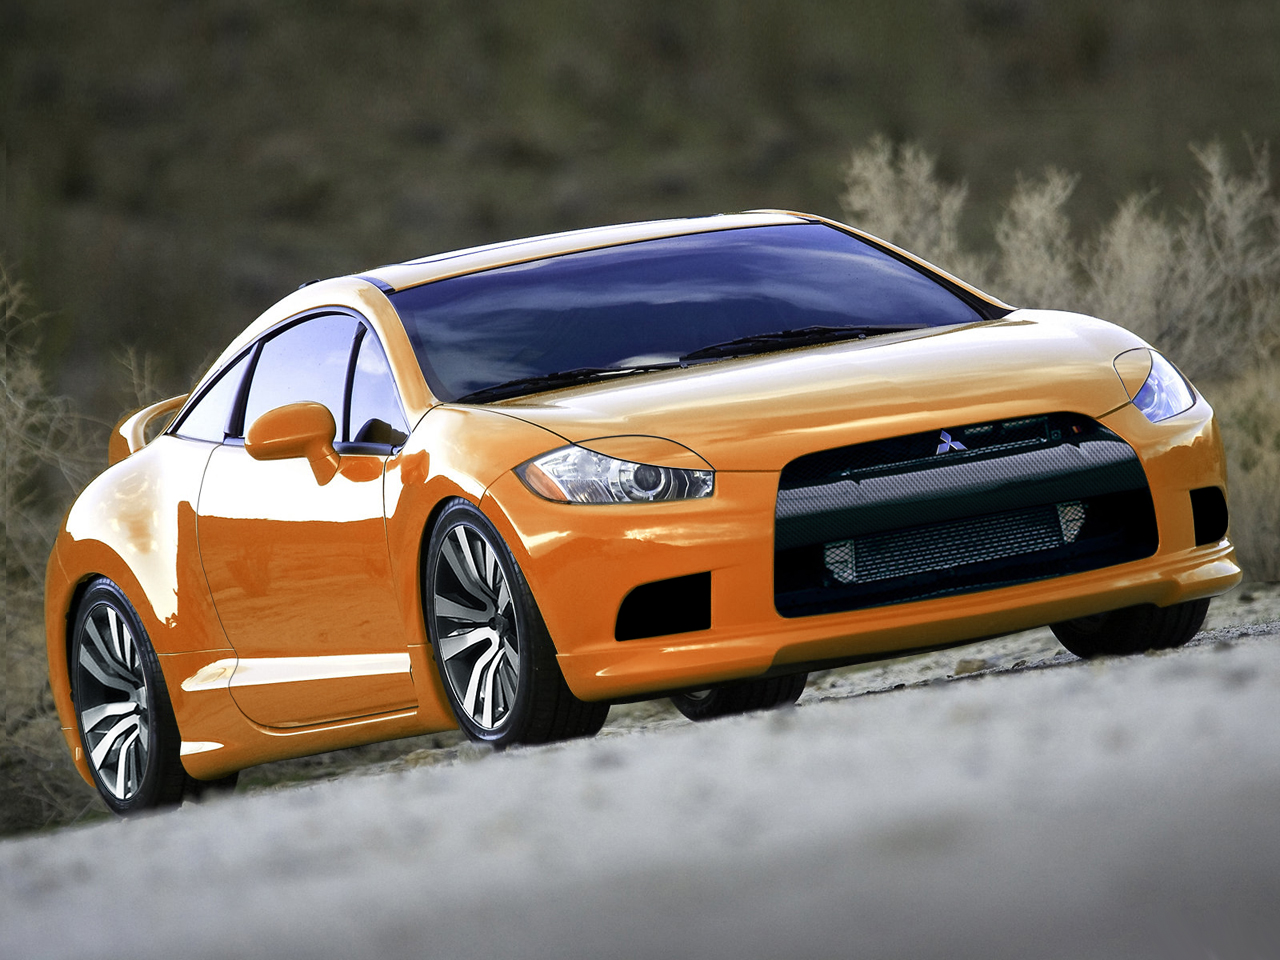 How To Draw A Mitsubishi Eclipse Car Step Pictures